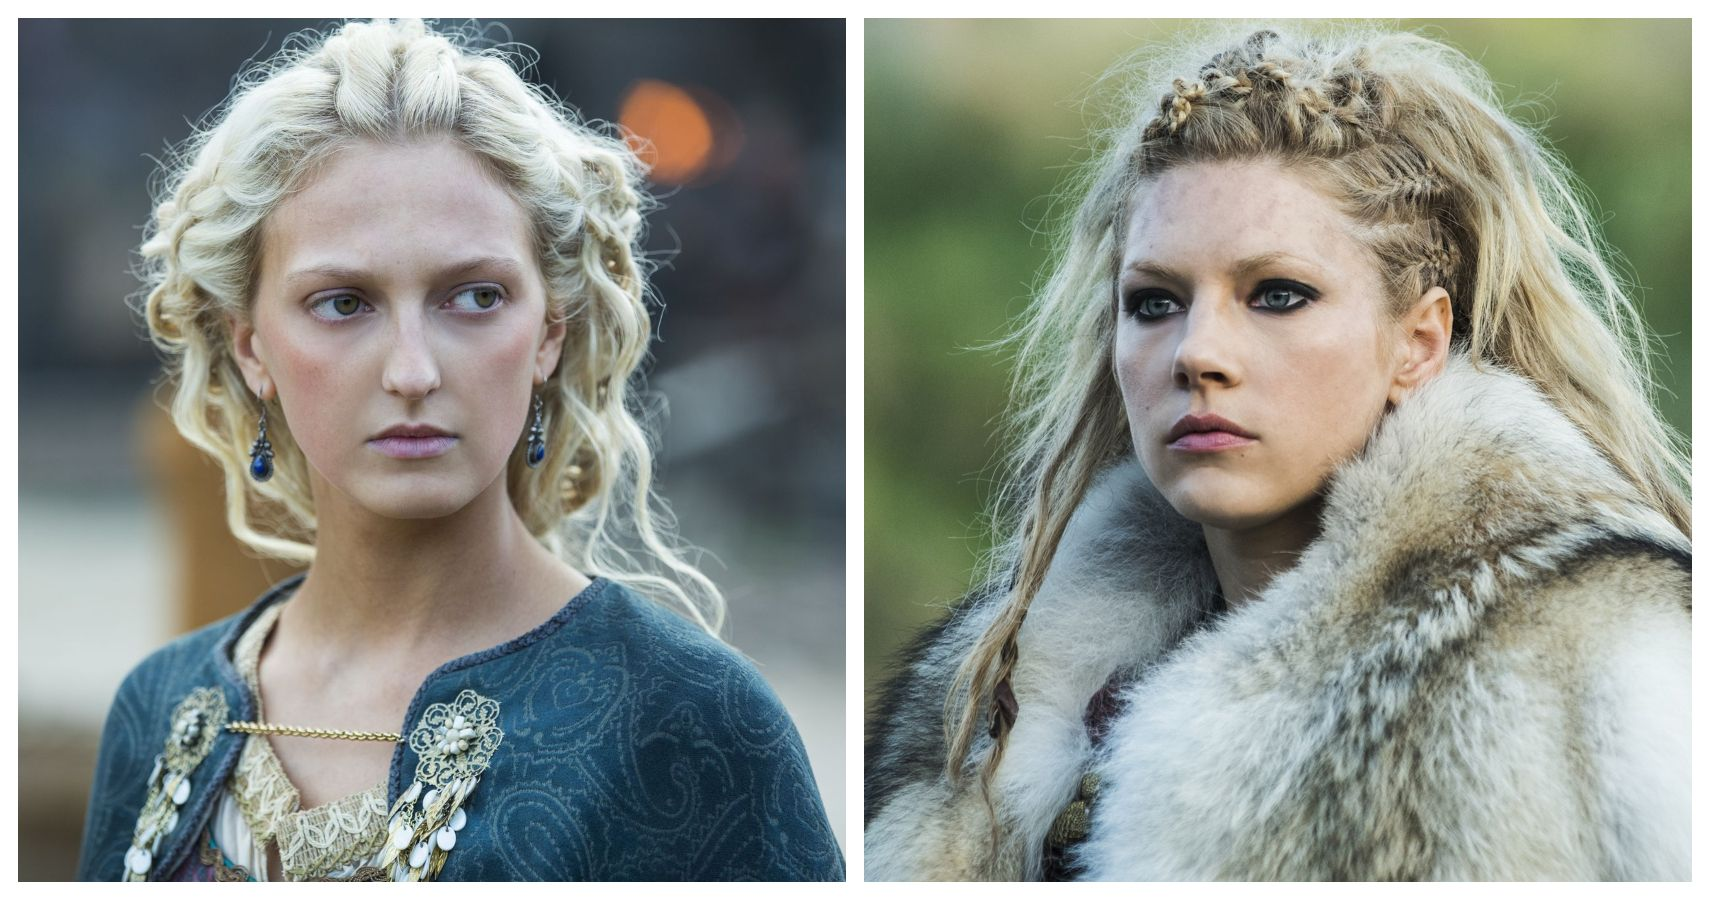 Vikings 10 Coolest Hairstyles For Women Screenrant